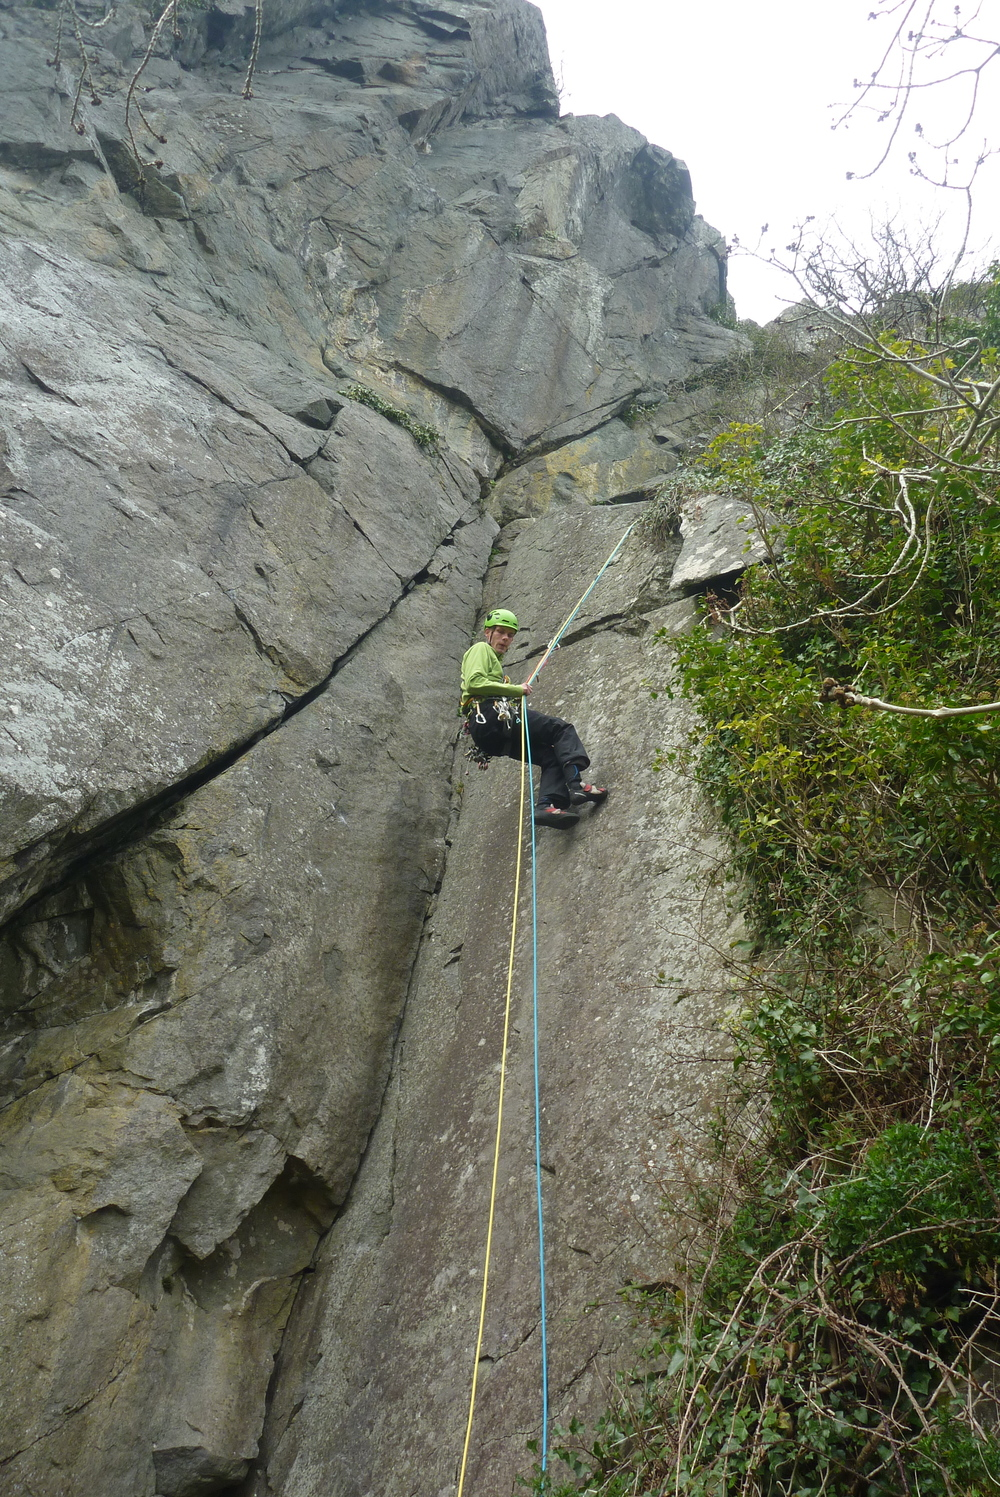 Dave abseiling back down Clapton's Crack